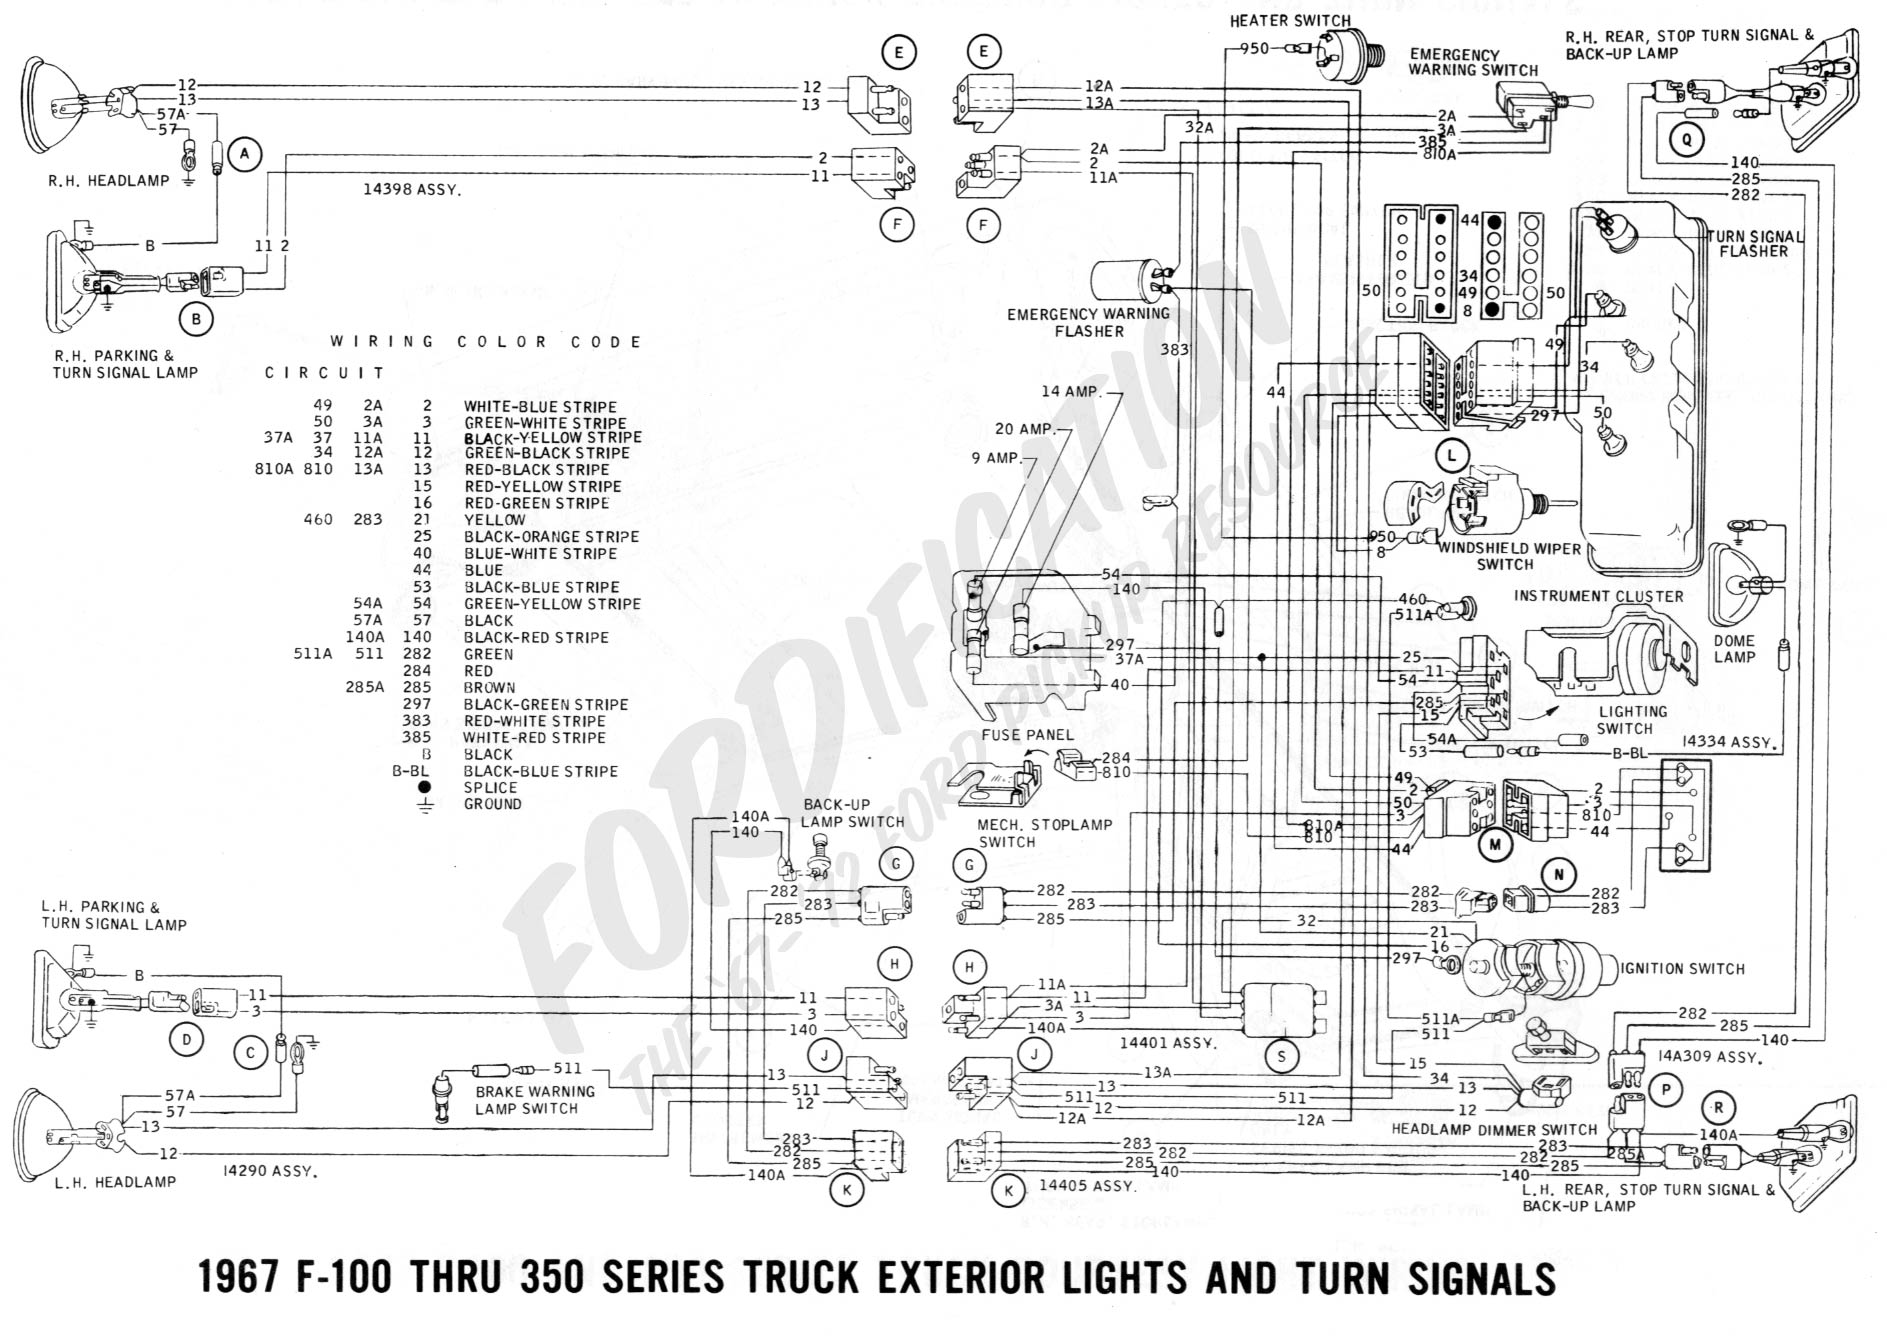 1967 ford wiring diagram wiring diagram dash ford 1967 300 diagram 1967 ford pickup wiring diagram #1